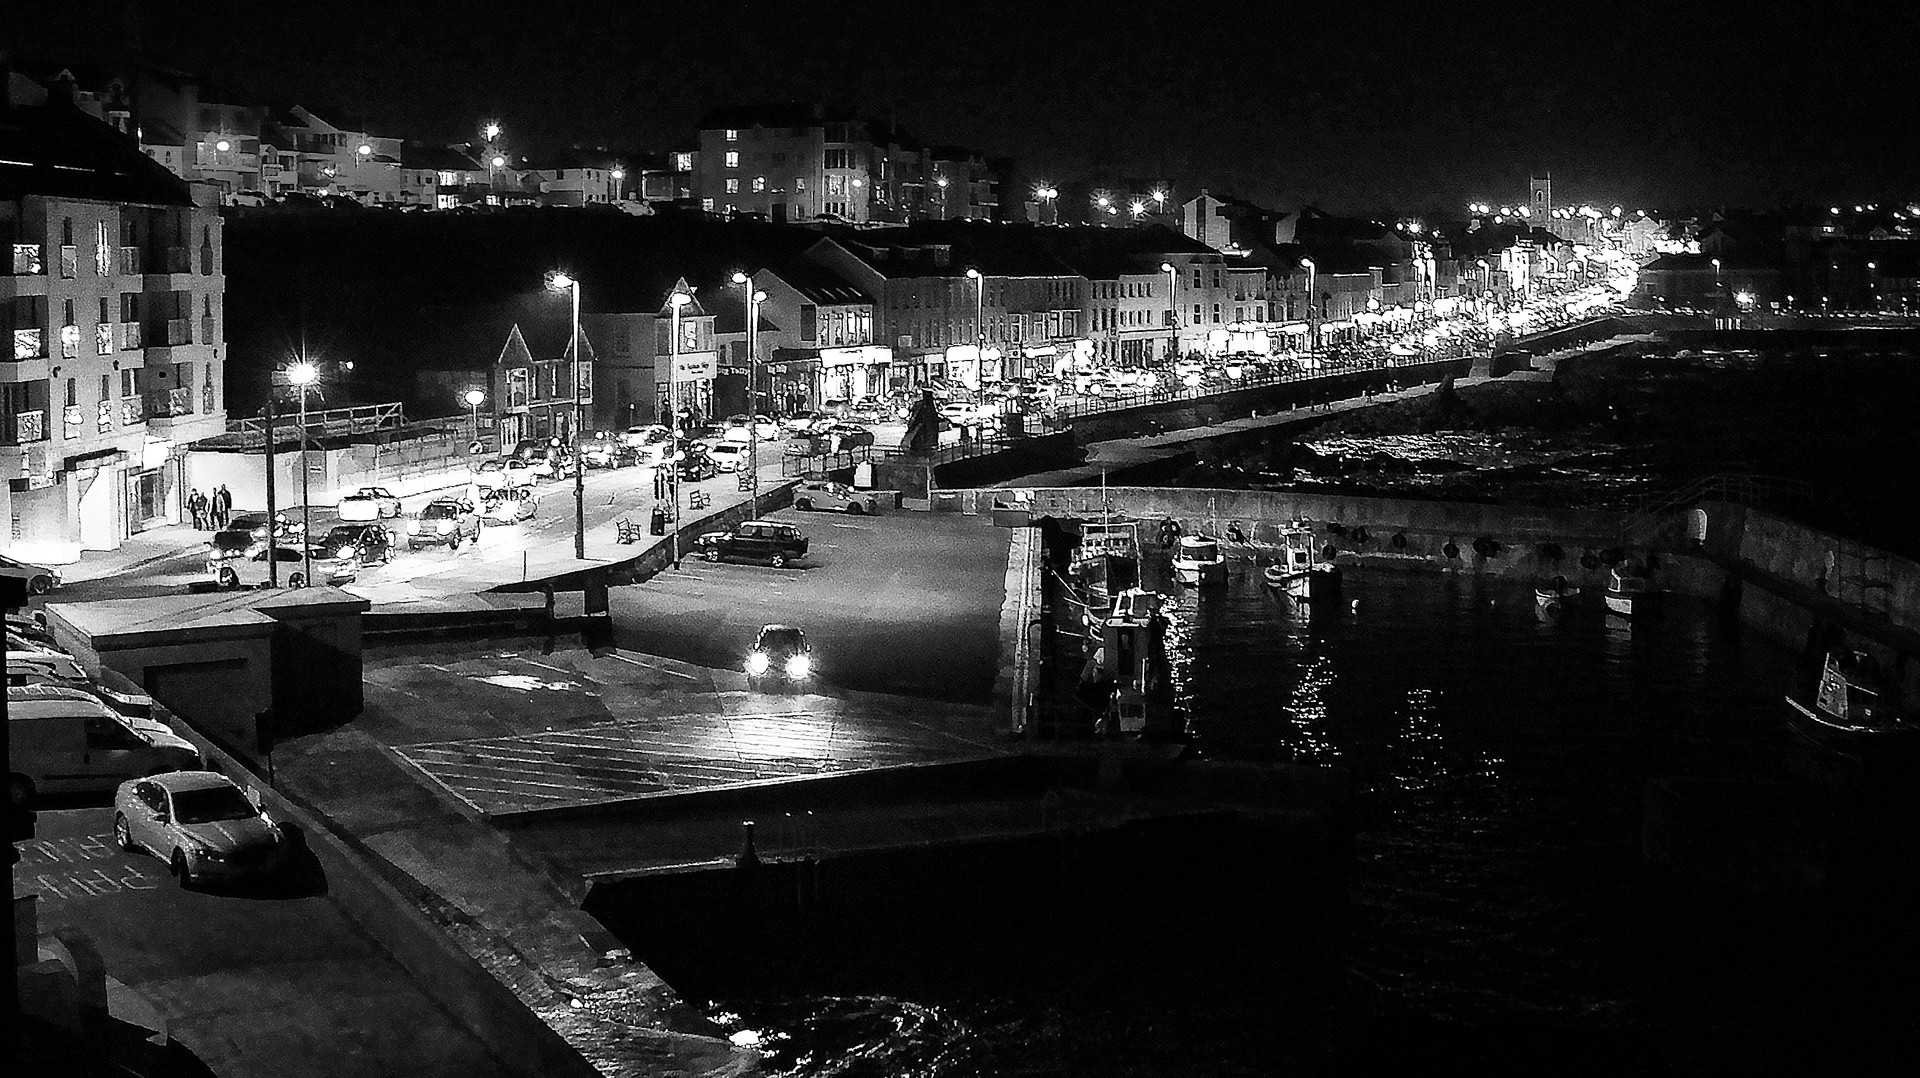 MONO - The port at night by SEAMUS O'NEILL (8 marks)